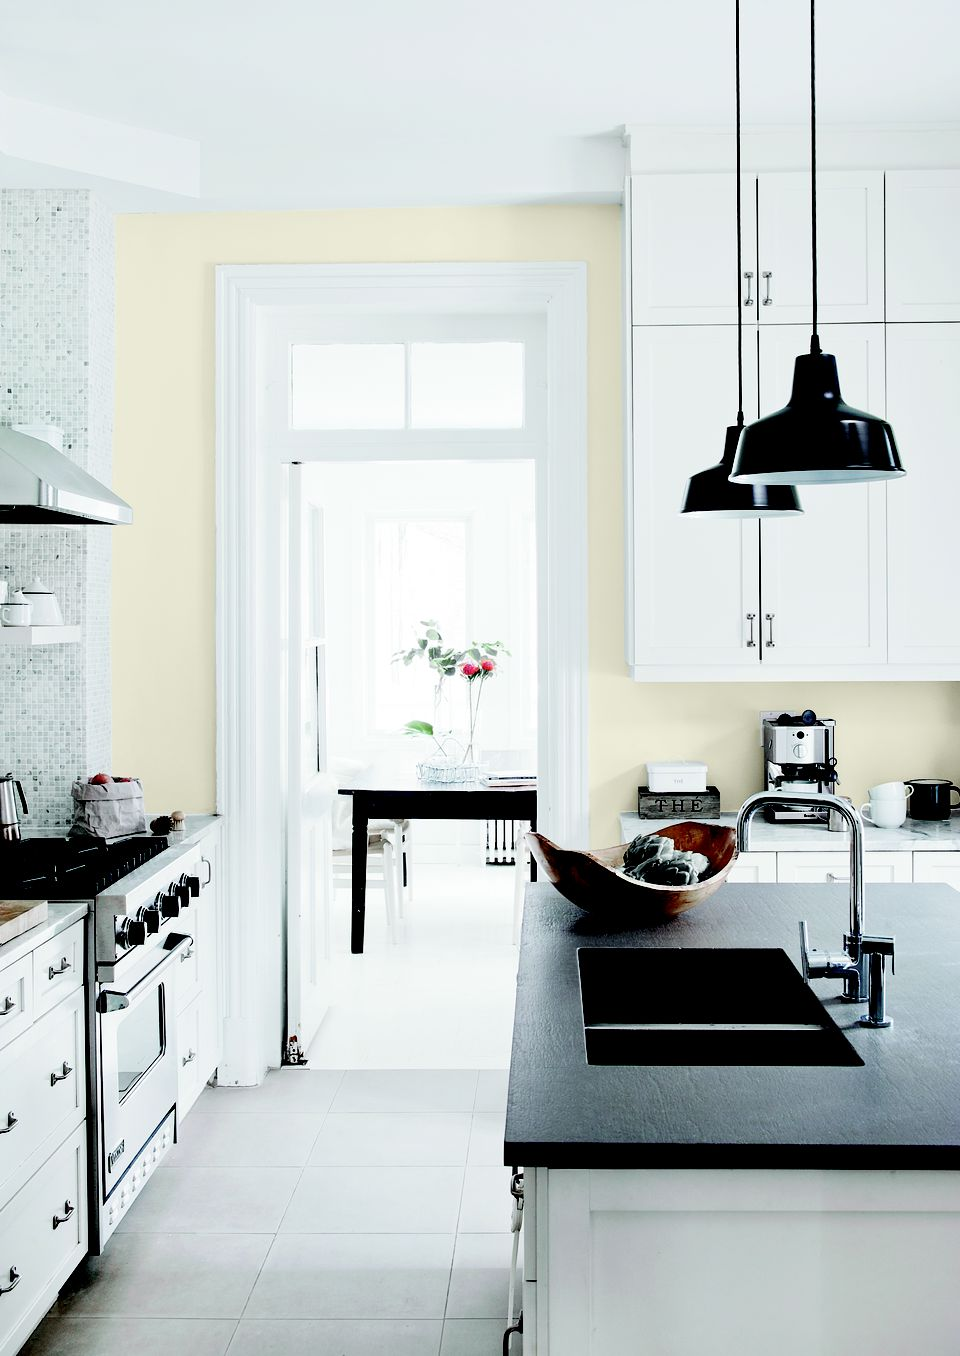 Kitchen cabinets painted Glidden Cappuccino White